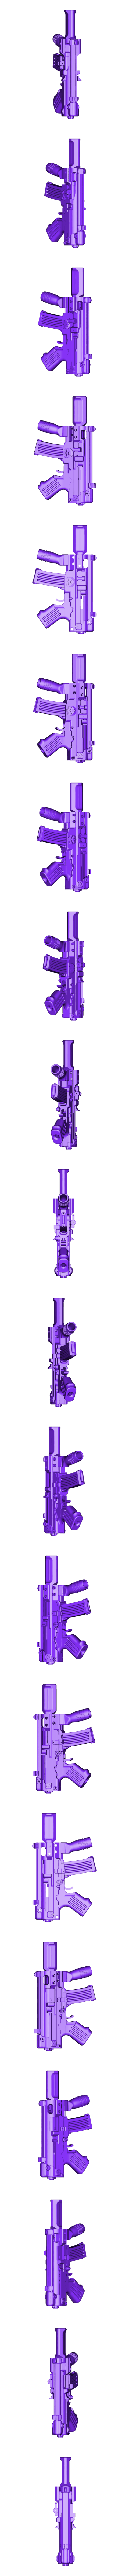 ZOMBIE_SLAYER_SMG_COMBINED_V8.stl Download free STL file ZOMBIE SLAYER PDW • 3D printing object, MuSSy